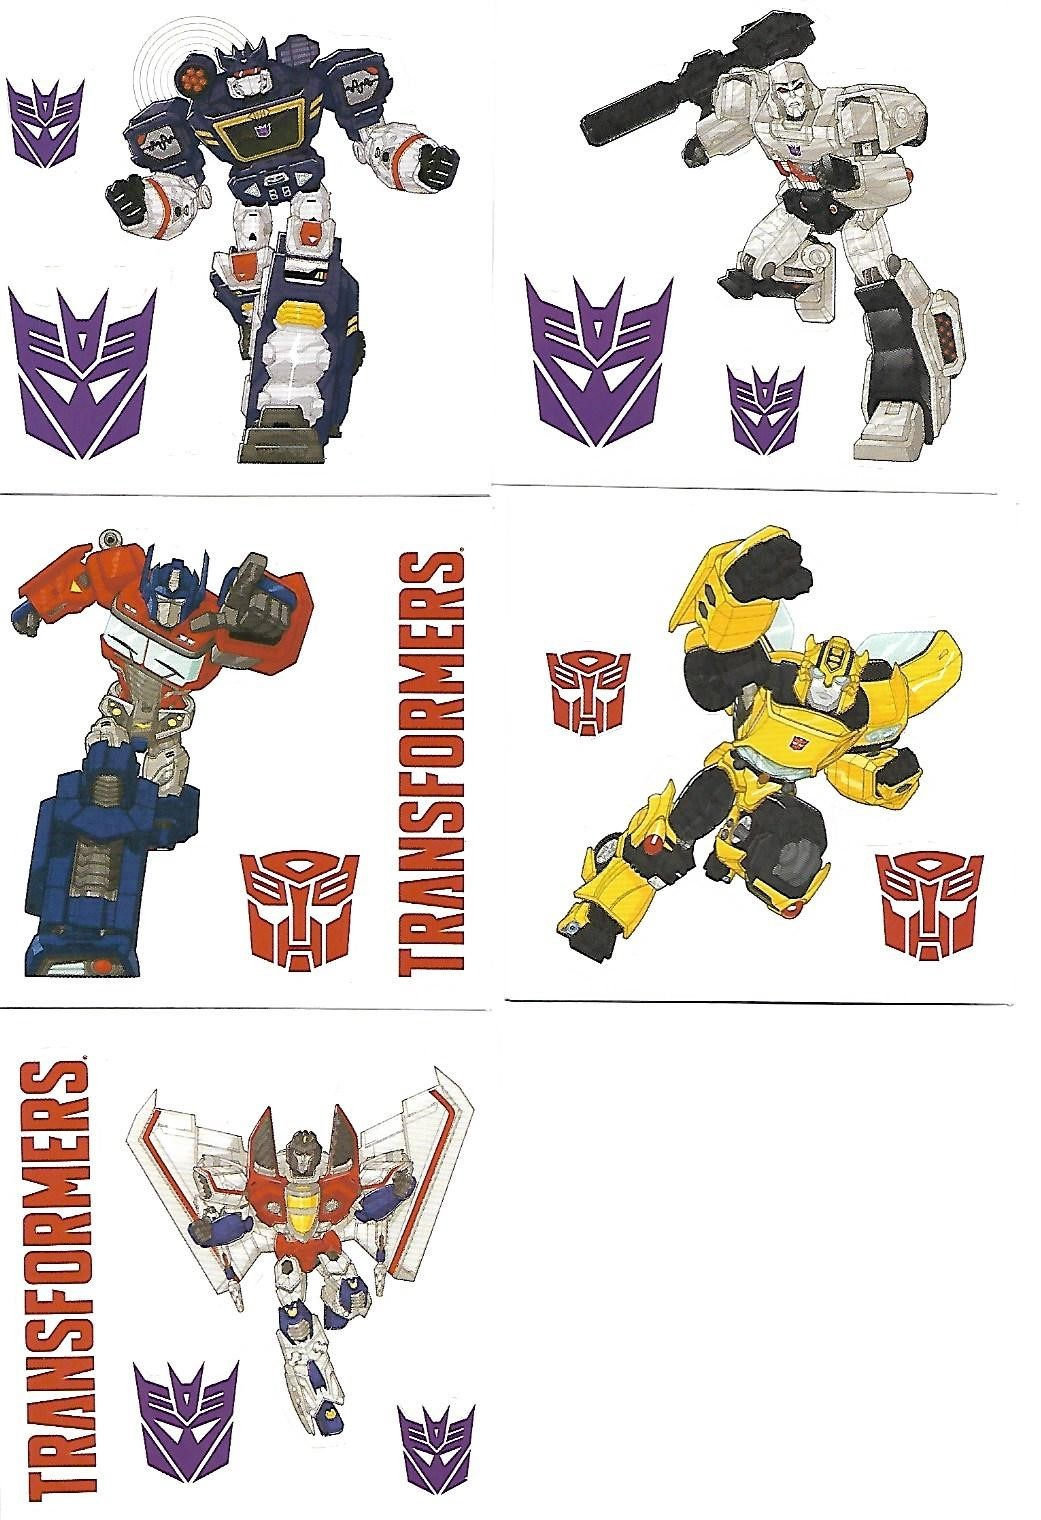 Transformers News: Transformers Cyberverse Designs Found in Radz 4-In-1 Transformers Candy